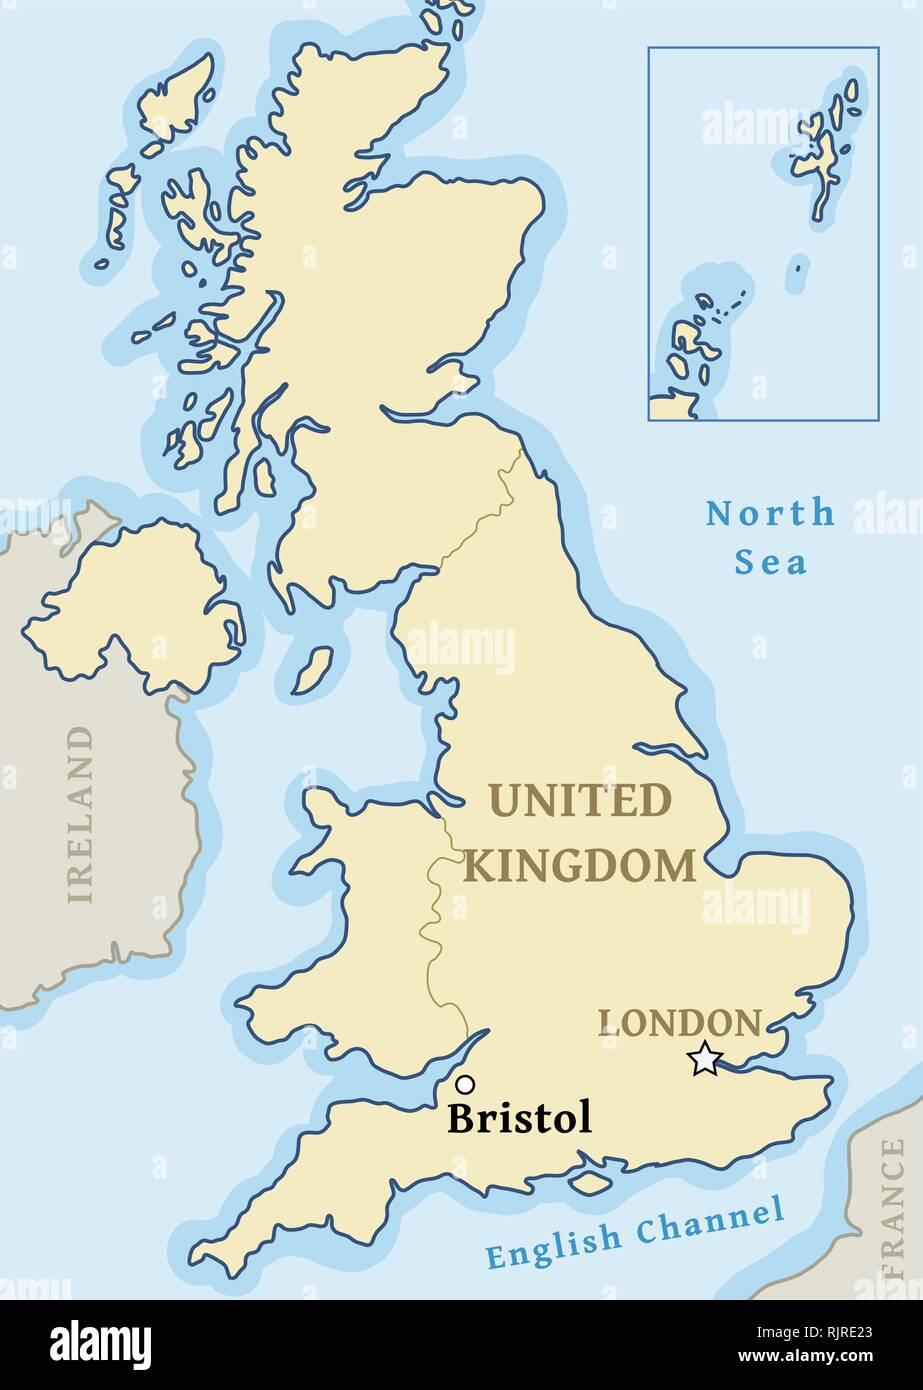 Map Of Uk Bristol.Bristol Uk Map Location City Marked In United Kingdom Uk Map